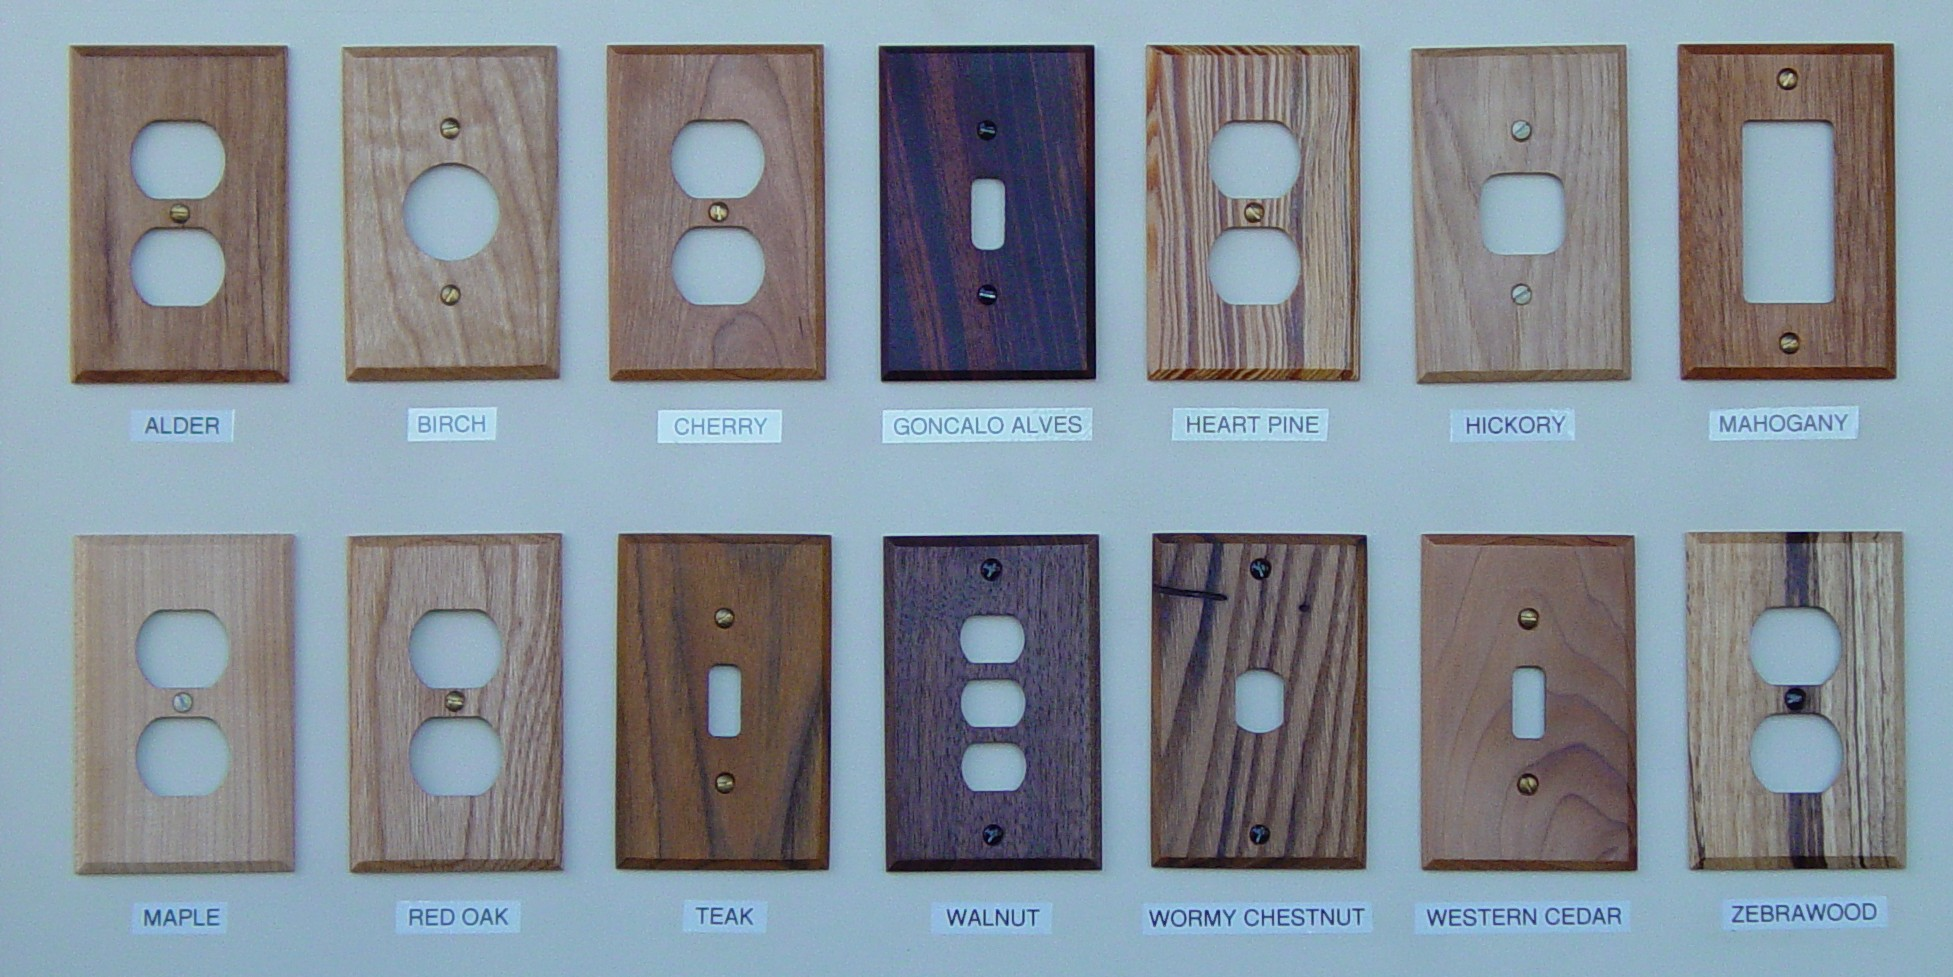 We Sell Wood Switch Plates Wood Wall Plates And Log Wood Wall